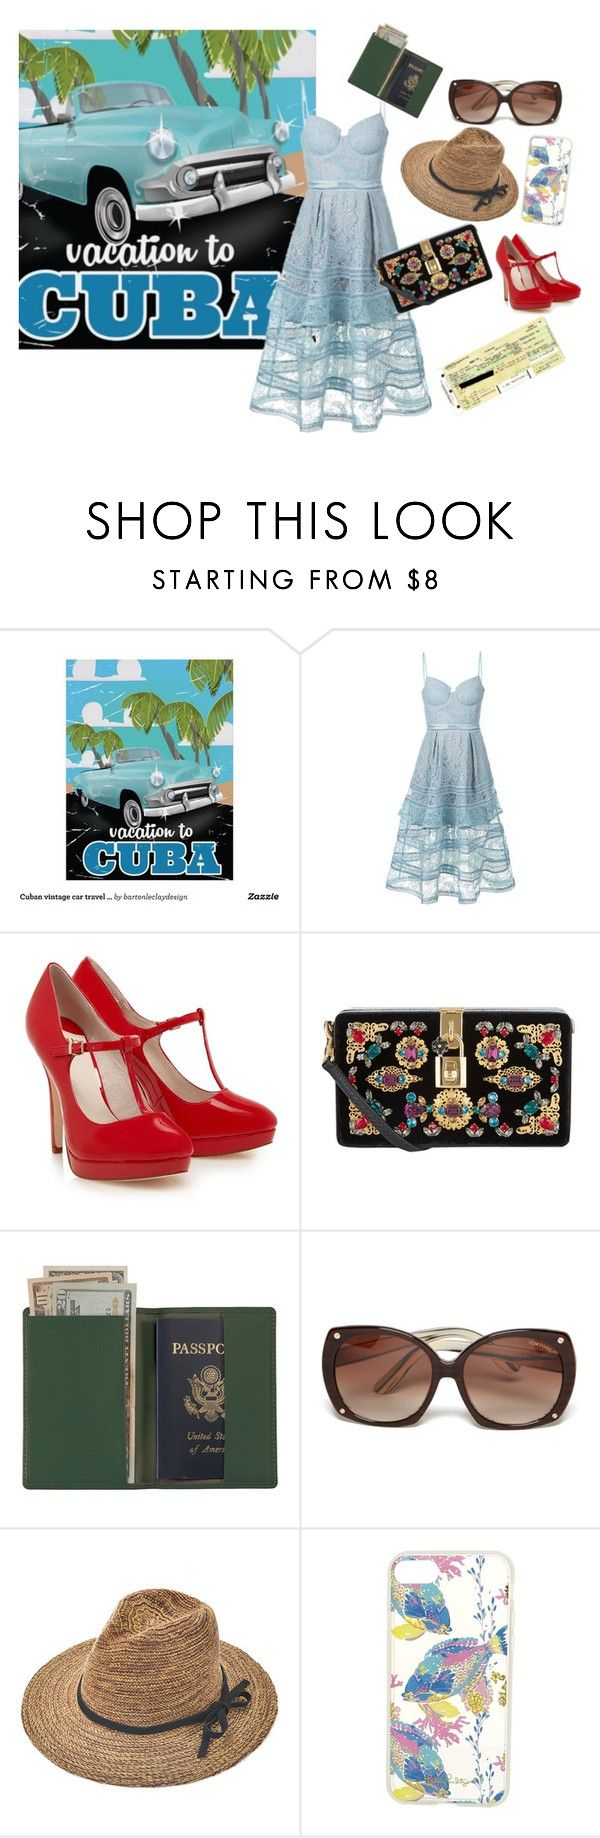 """""""Cuba"""" by cmg314 ❤ liked on Polyvore featuring self-portrait, Dolce&Gabbana, Royce Leather, Tom Ford, Lilly Pulitzer, Plane, StreetStyle, ootd, contestentry and cuba"""